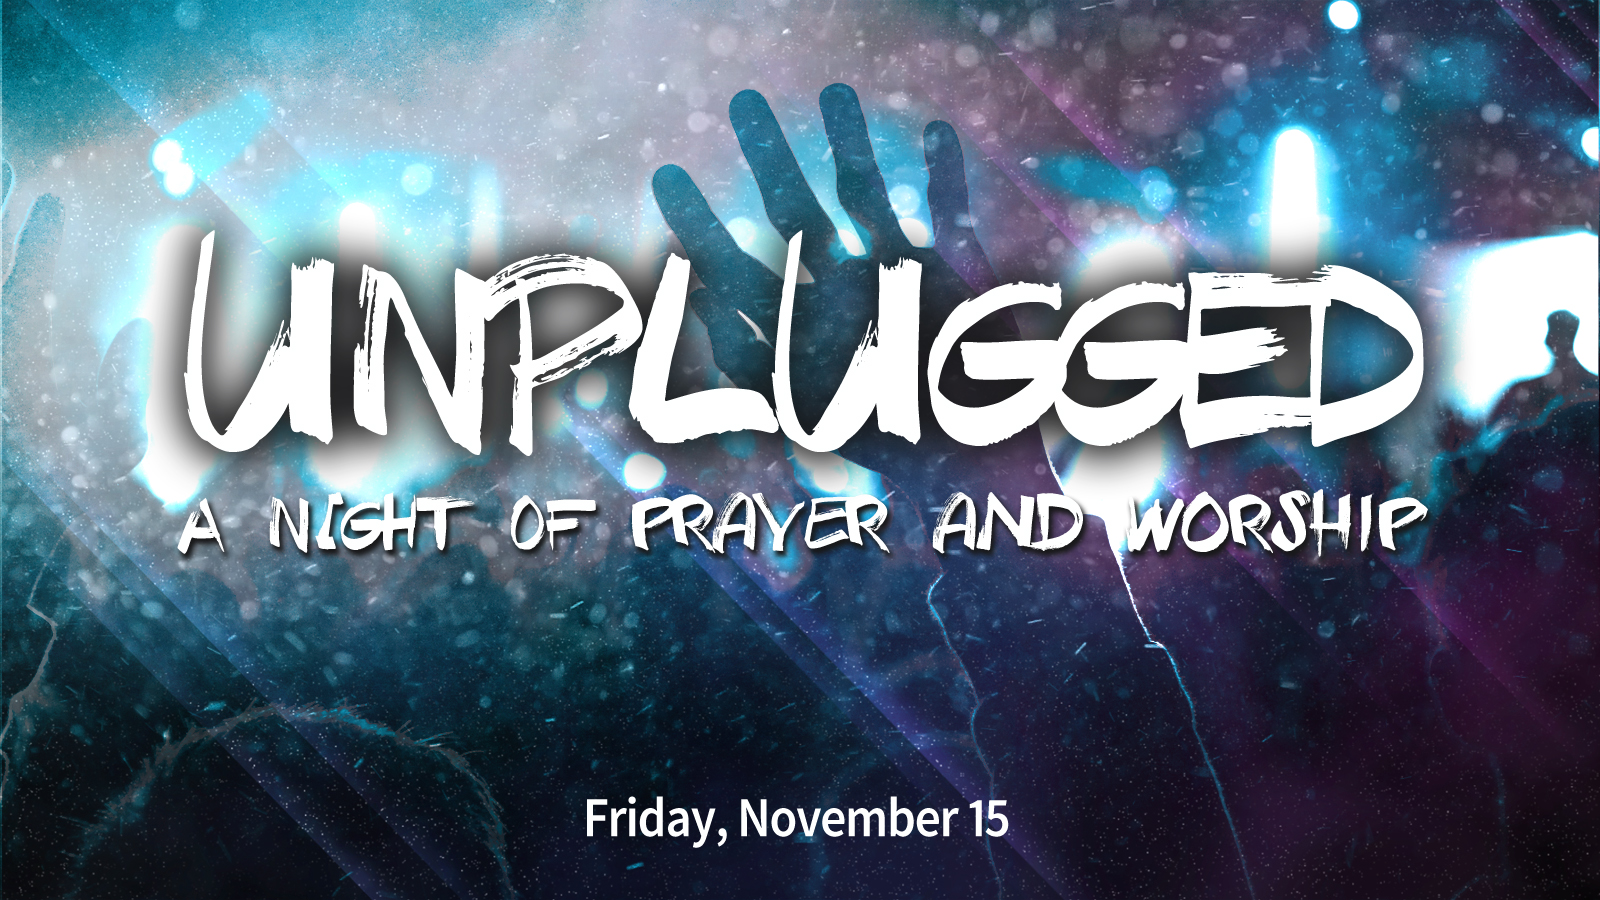 Unplugged-a night of prayer and worship